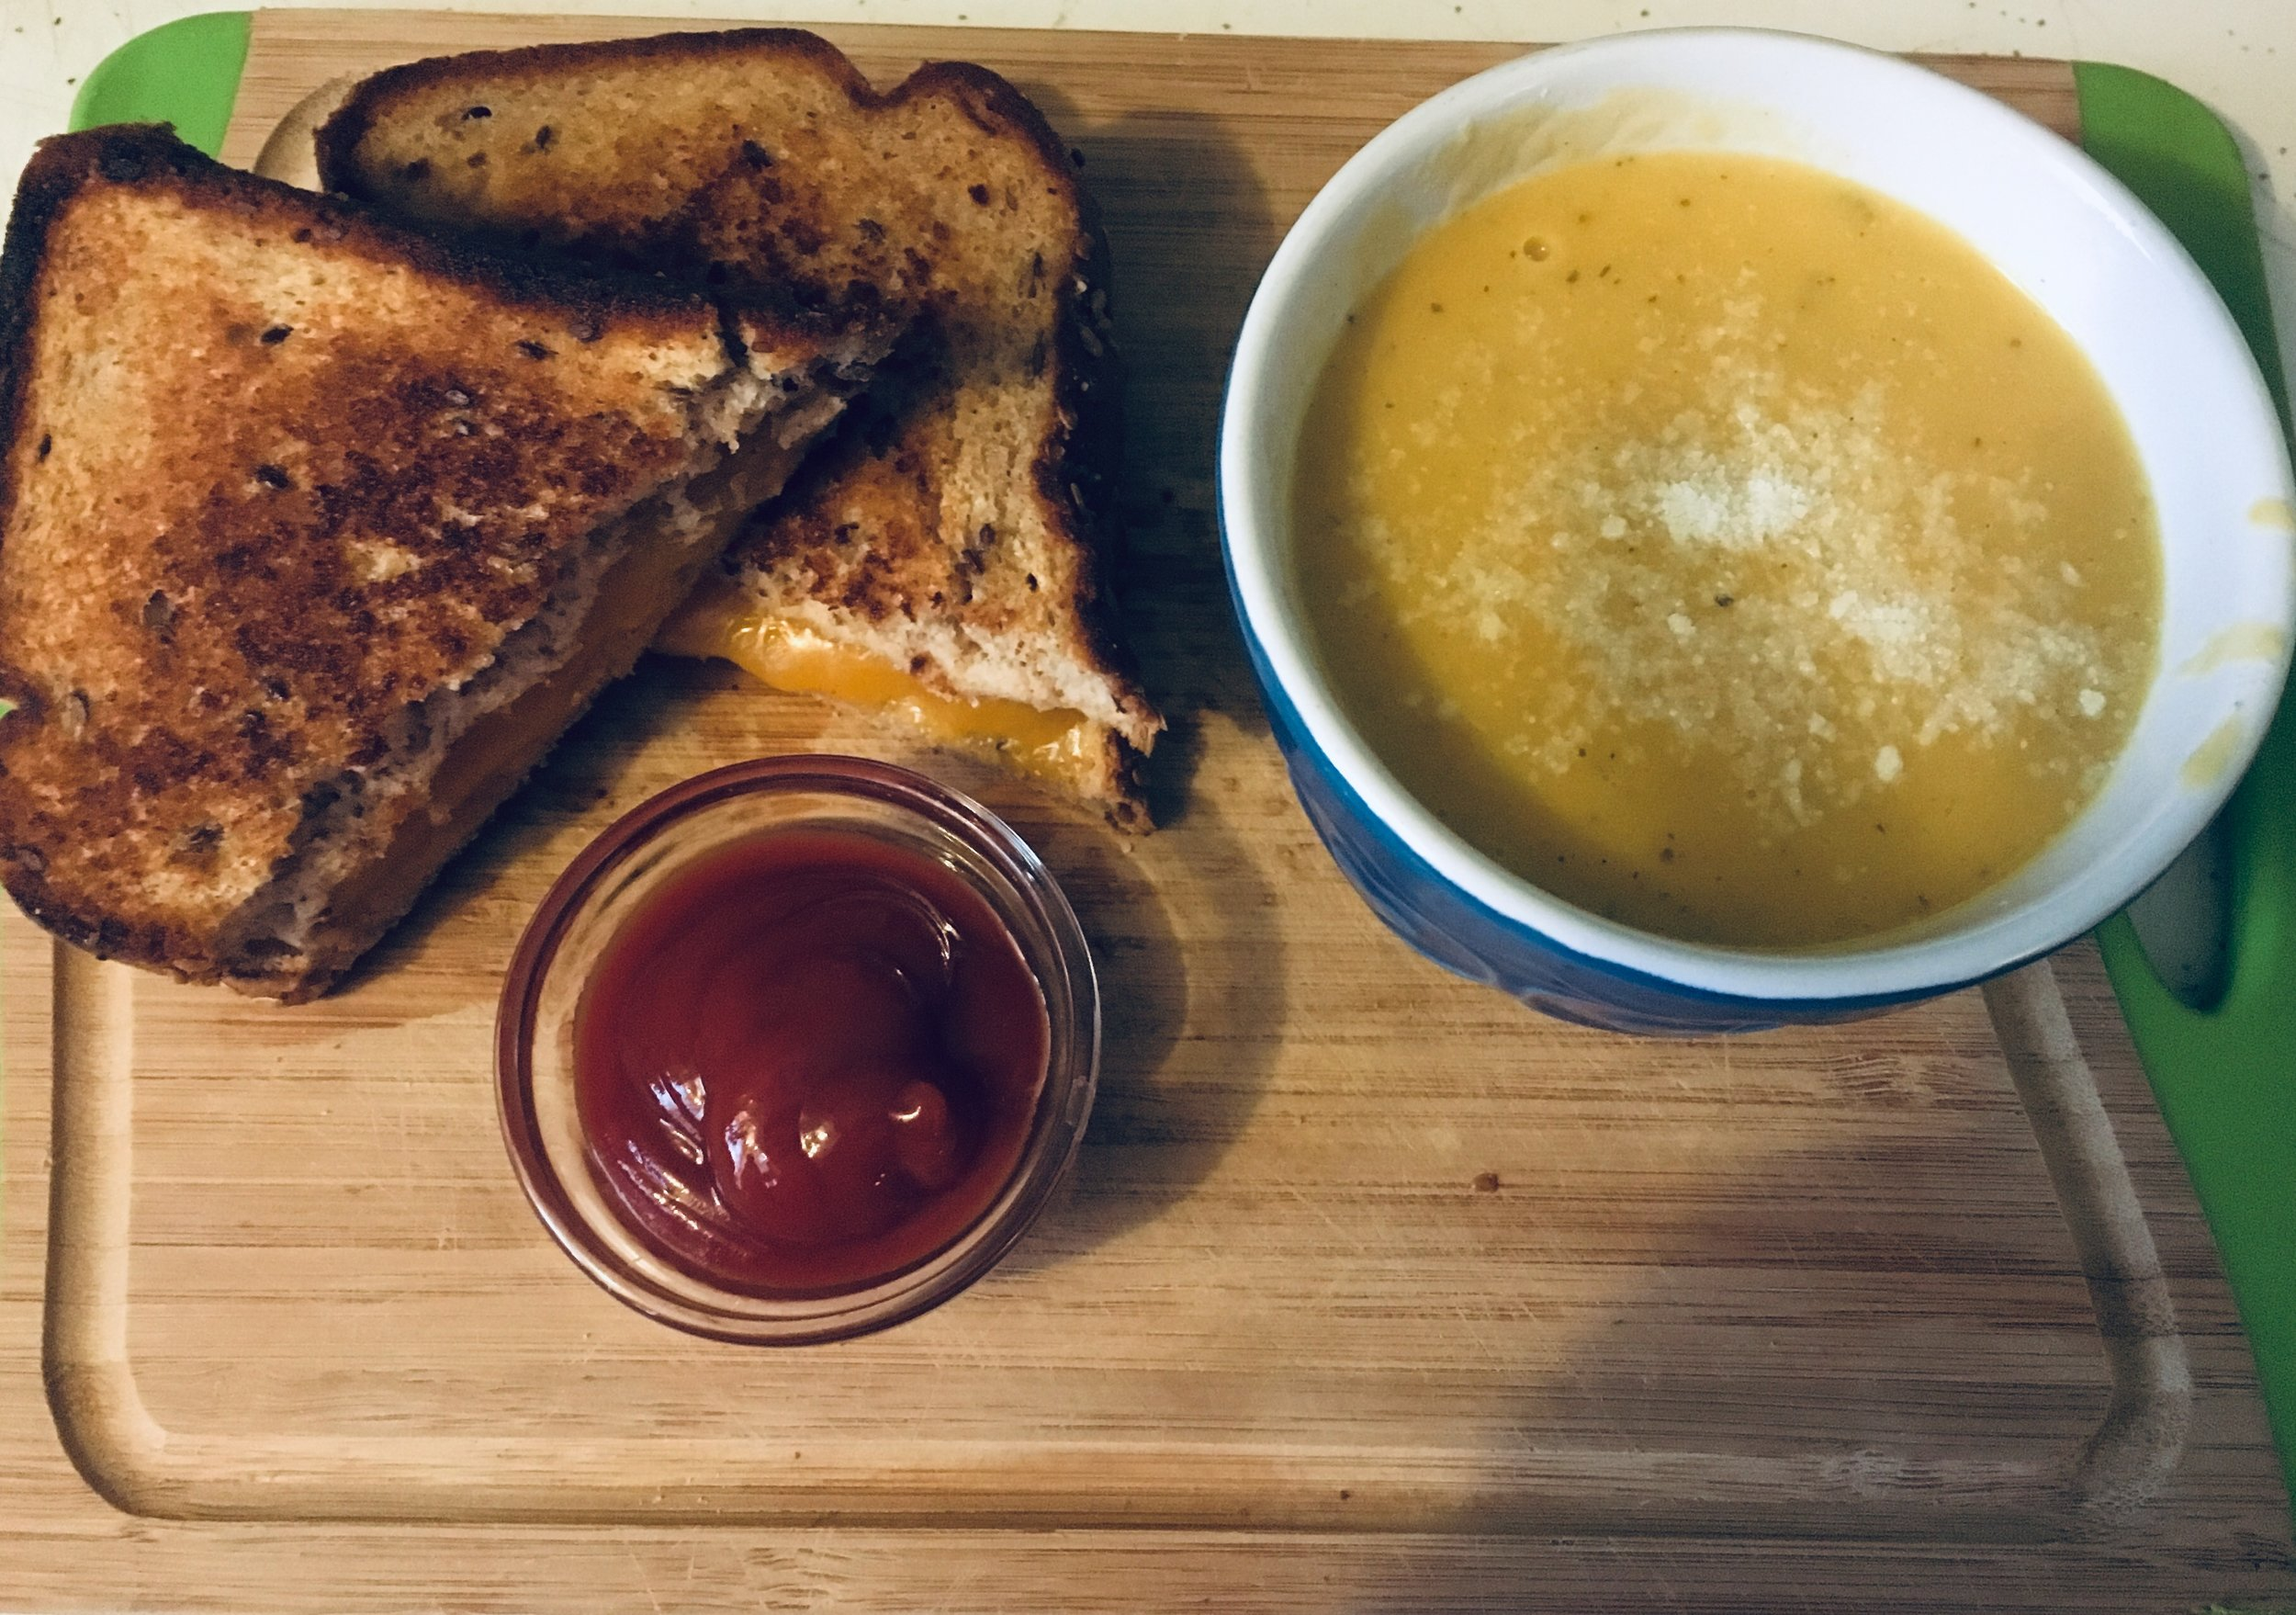 Nothing beats the classic grilled cheese sandwich and tomato (or squash) soup. The fact that it takes less than 15-minutes to whip up is a bonus. Use whole grain bread, your favourite cheese, and a lower sodium tomato soup  .